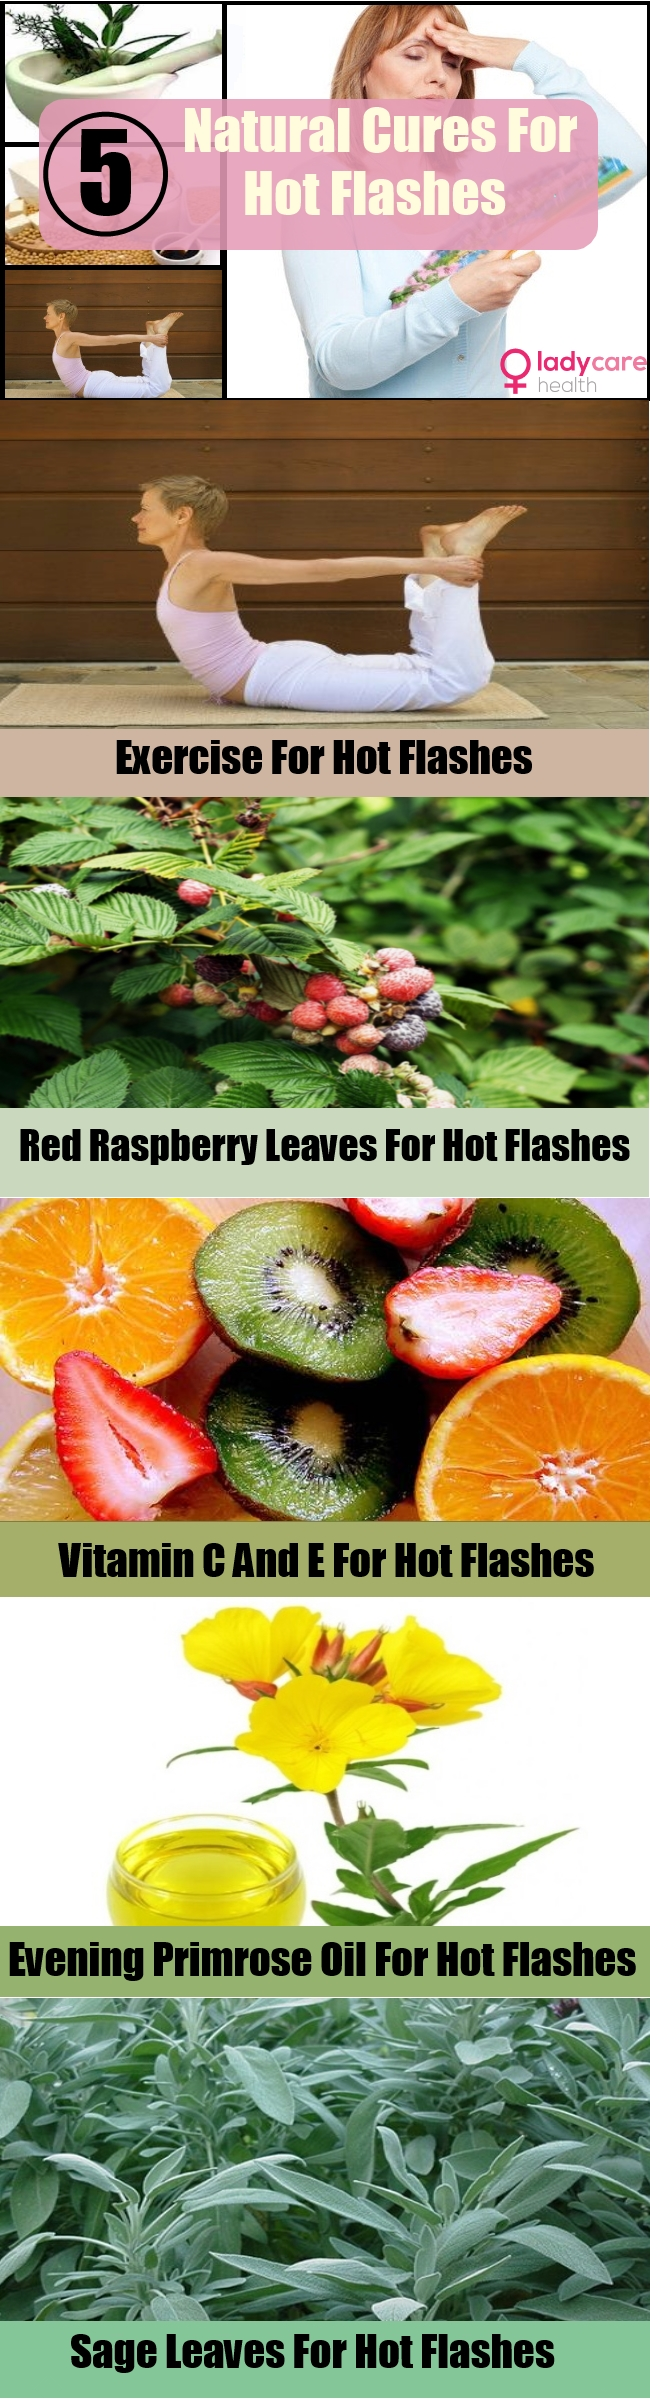 Best Natural Cures For Hot Flashes In Women